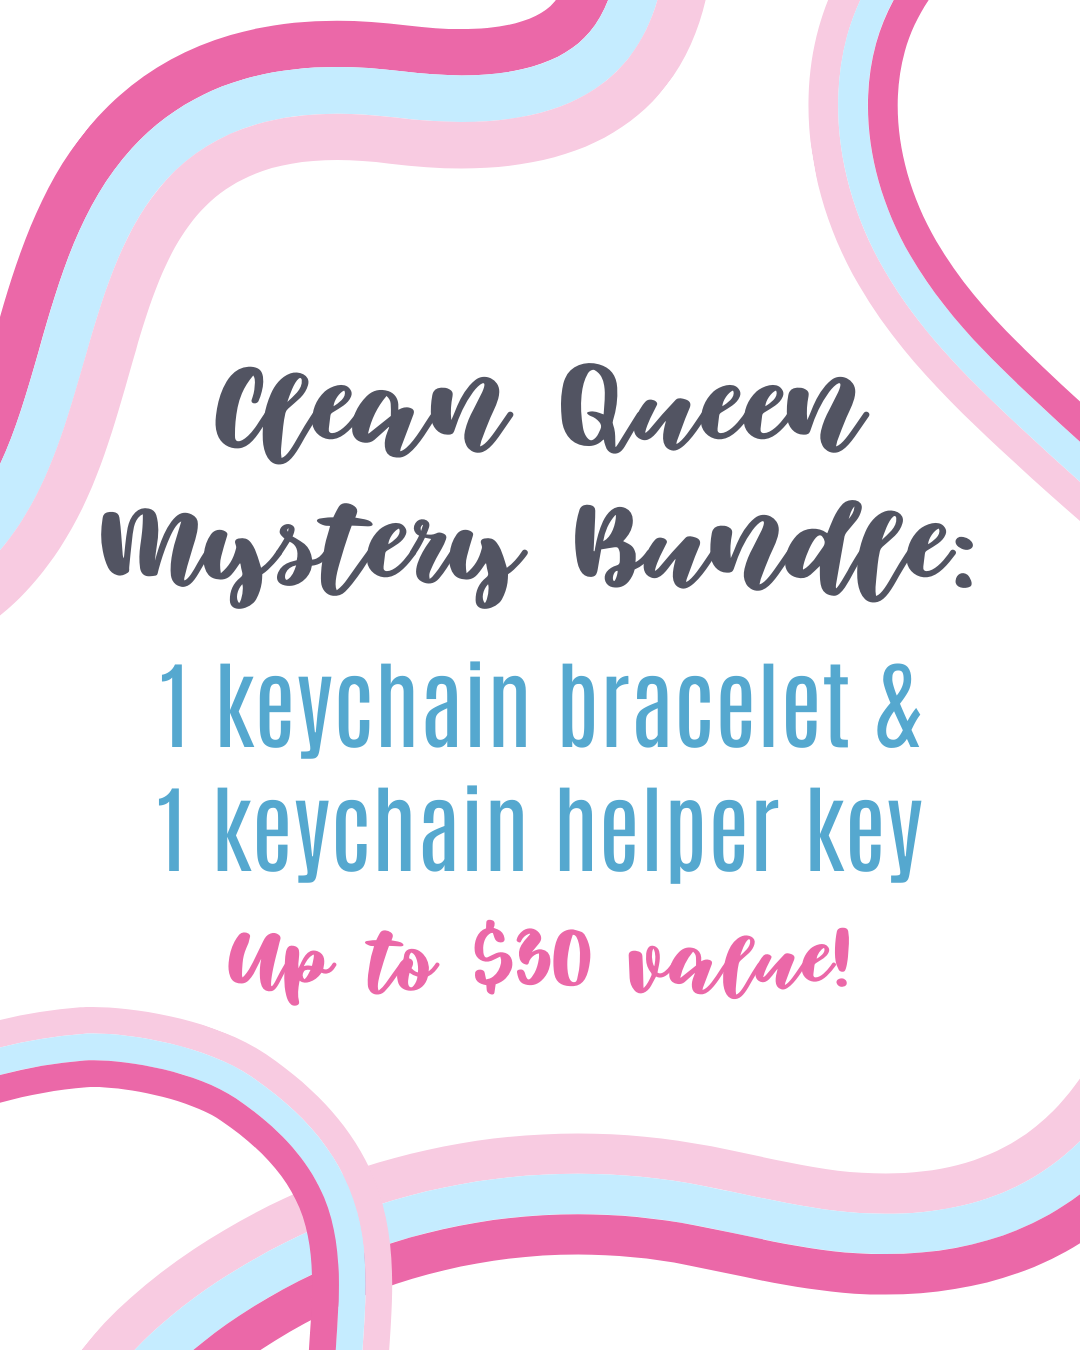 Mystery Bundle: Clean Queen